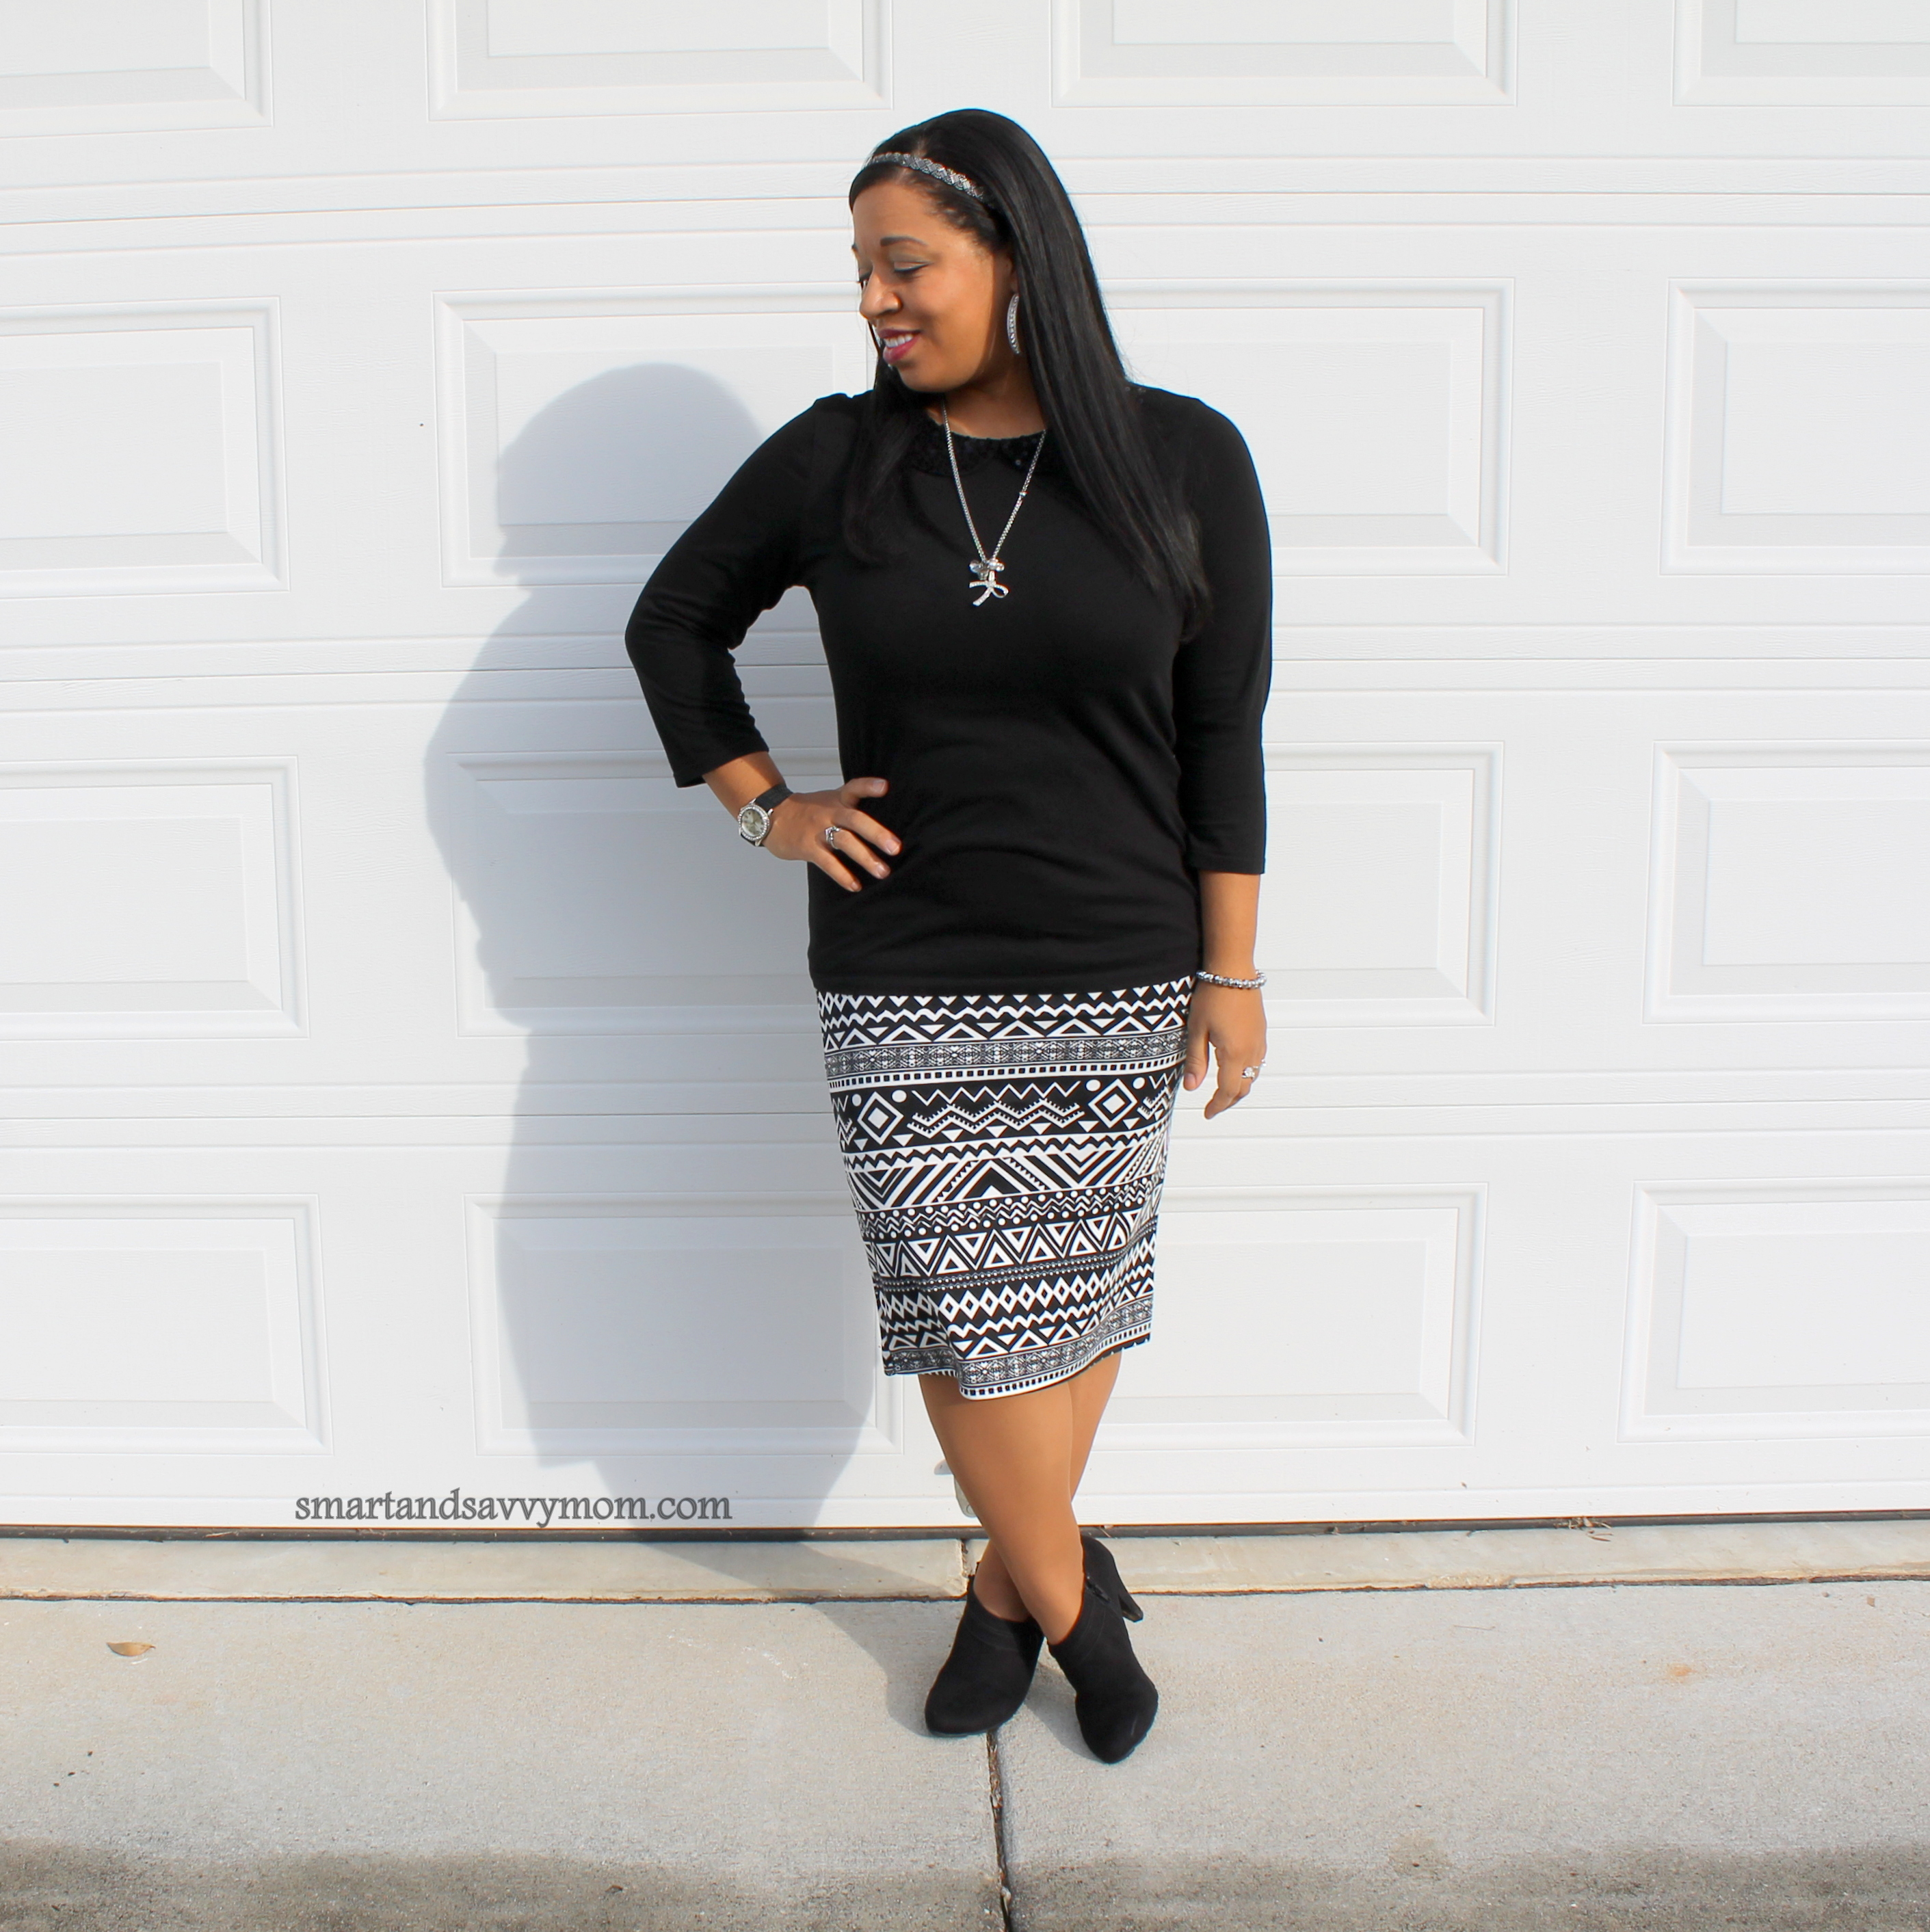 simple, easy modest outfit idea, black peter pan collar top with aztec black and white striped skirt